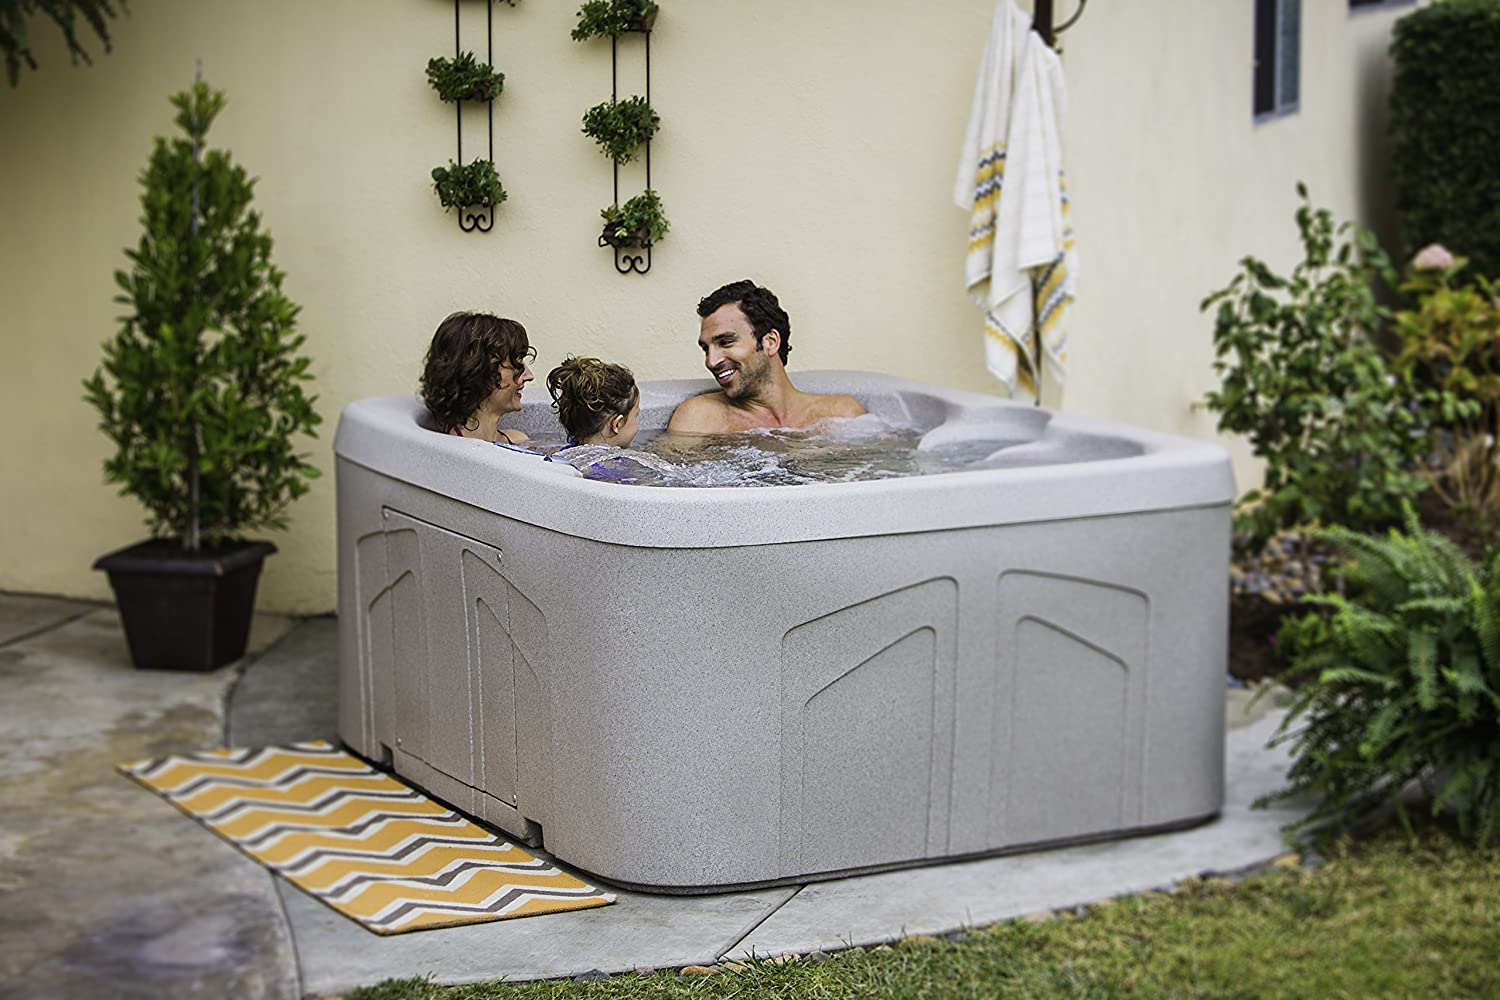 Lifesmart Rock Solid Simplicity Plug and Play 4 Person Spa With 12 Jets